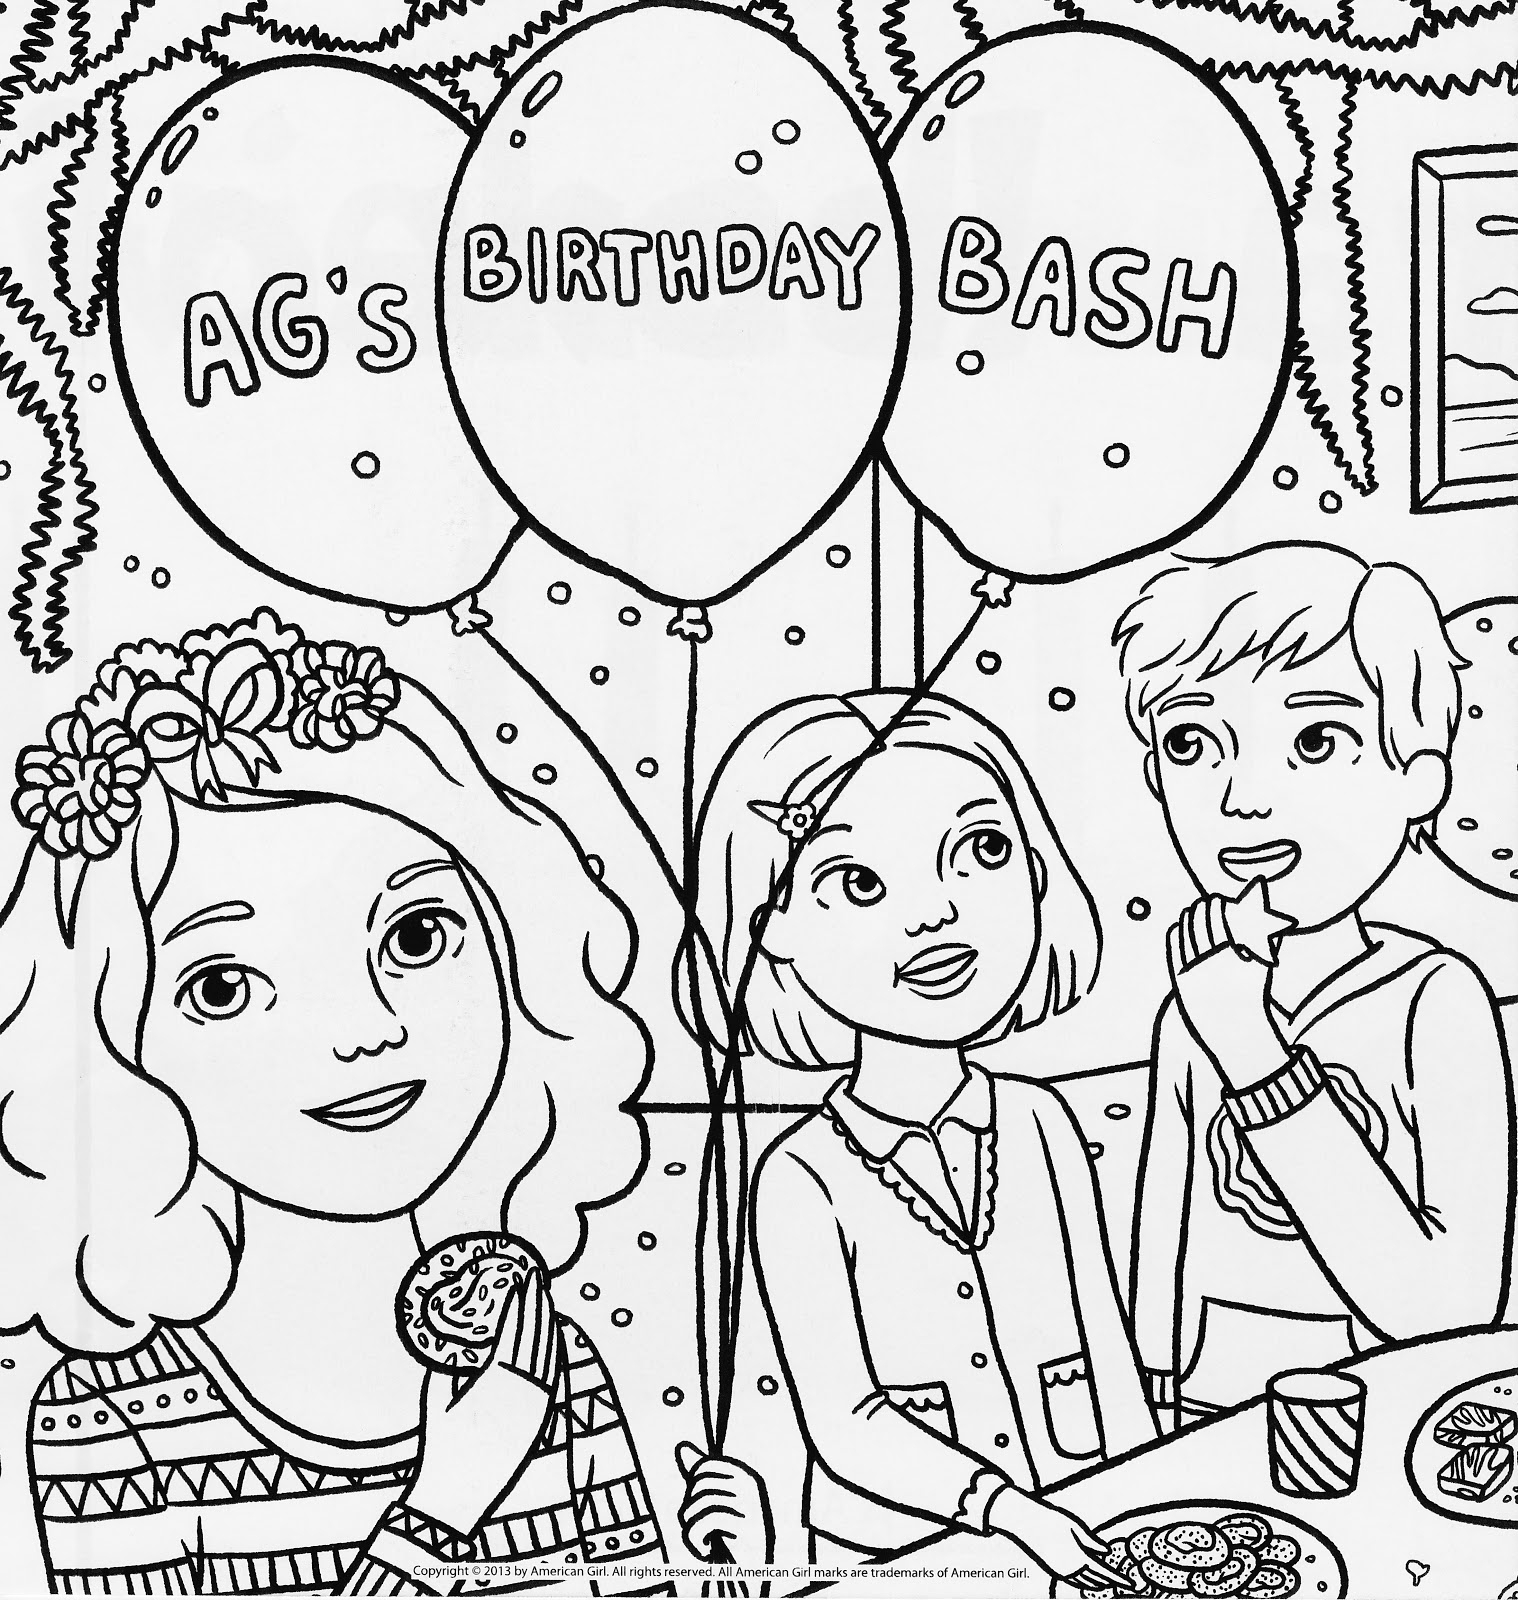 american girl coloring pages - american girl magazine special birthday